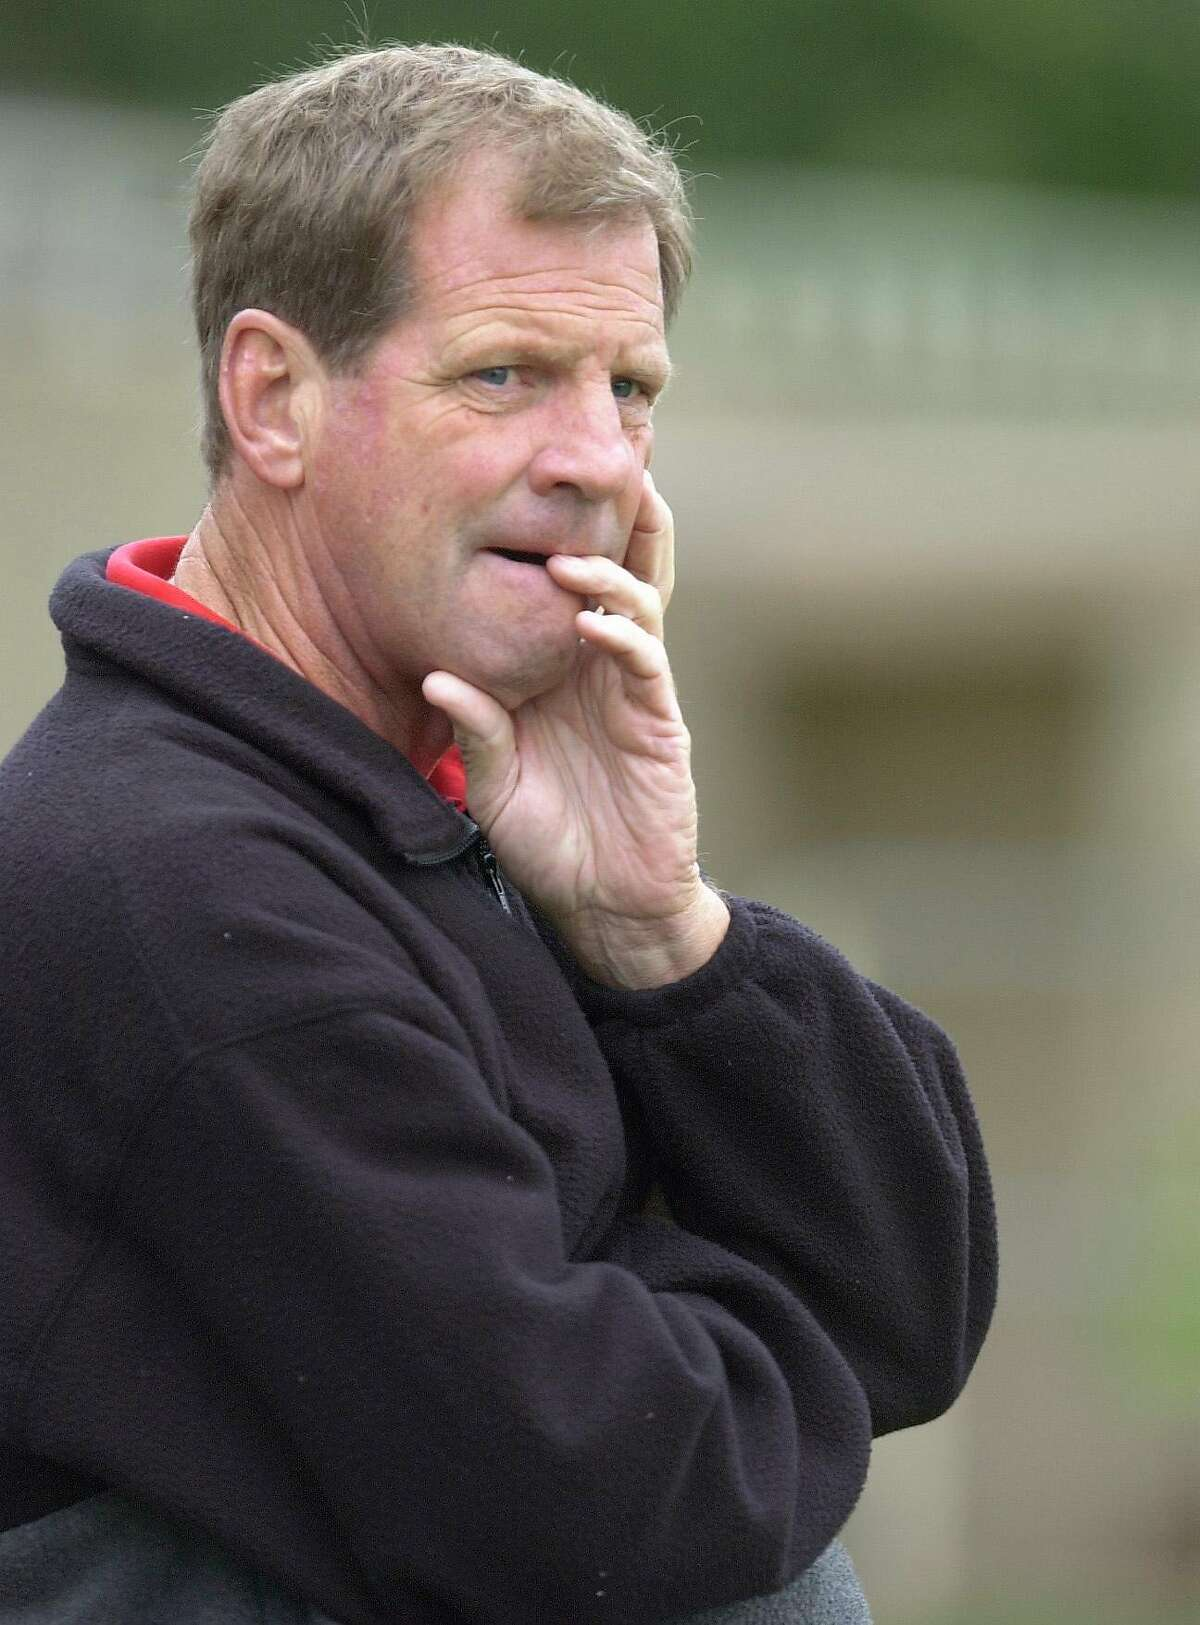 An ex-student has accused former University High School soccer coach Rusty Taylor of abuse.